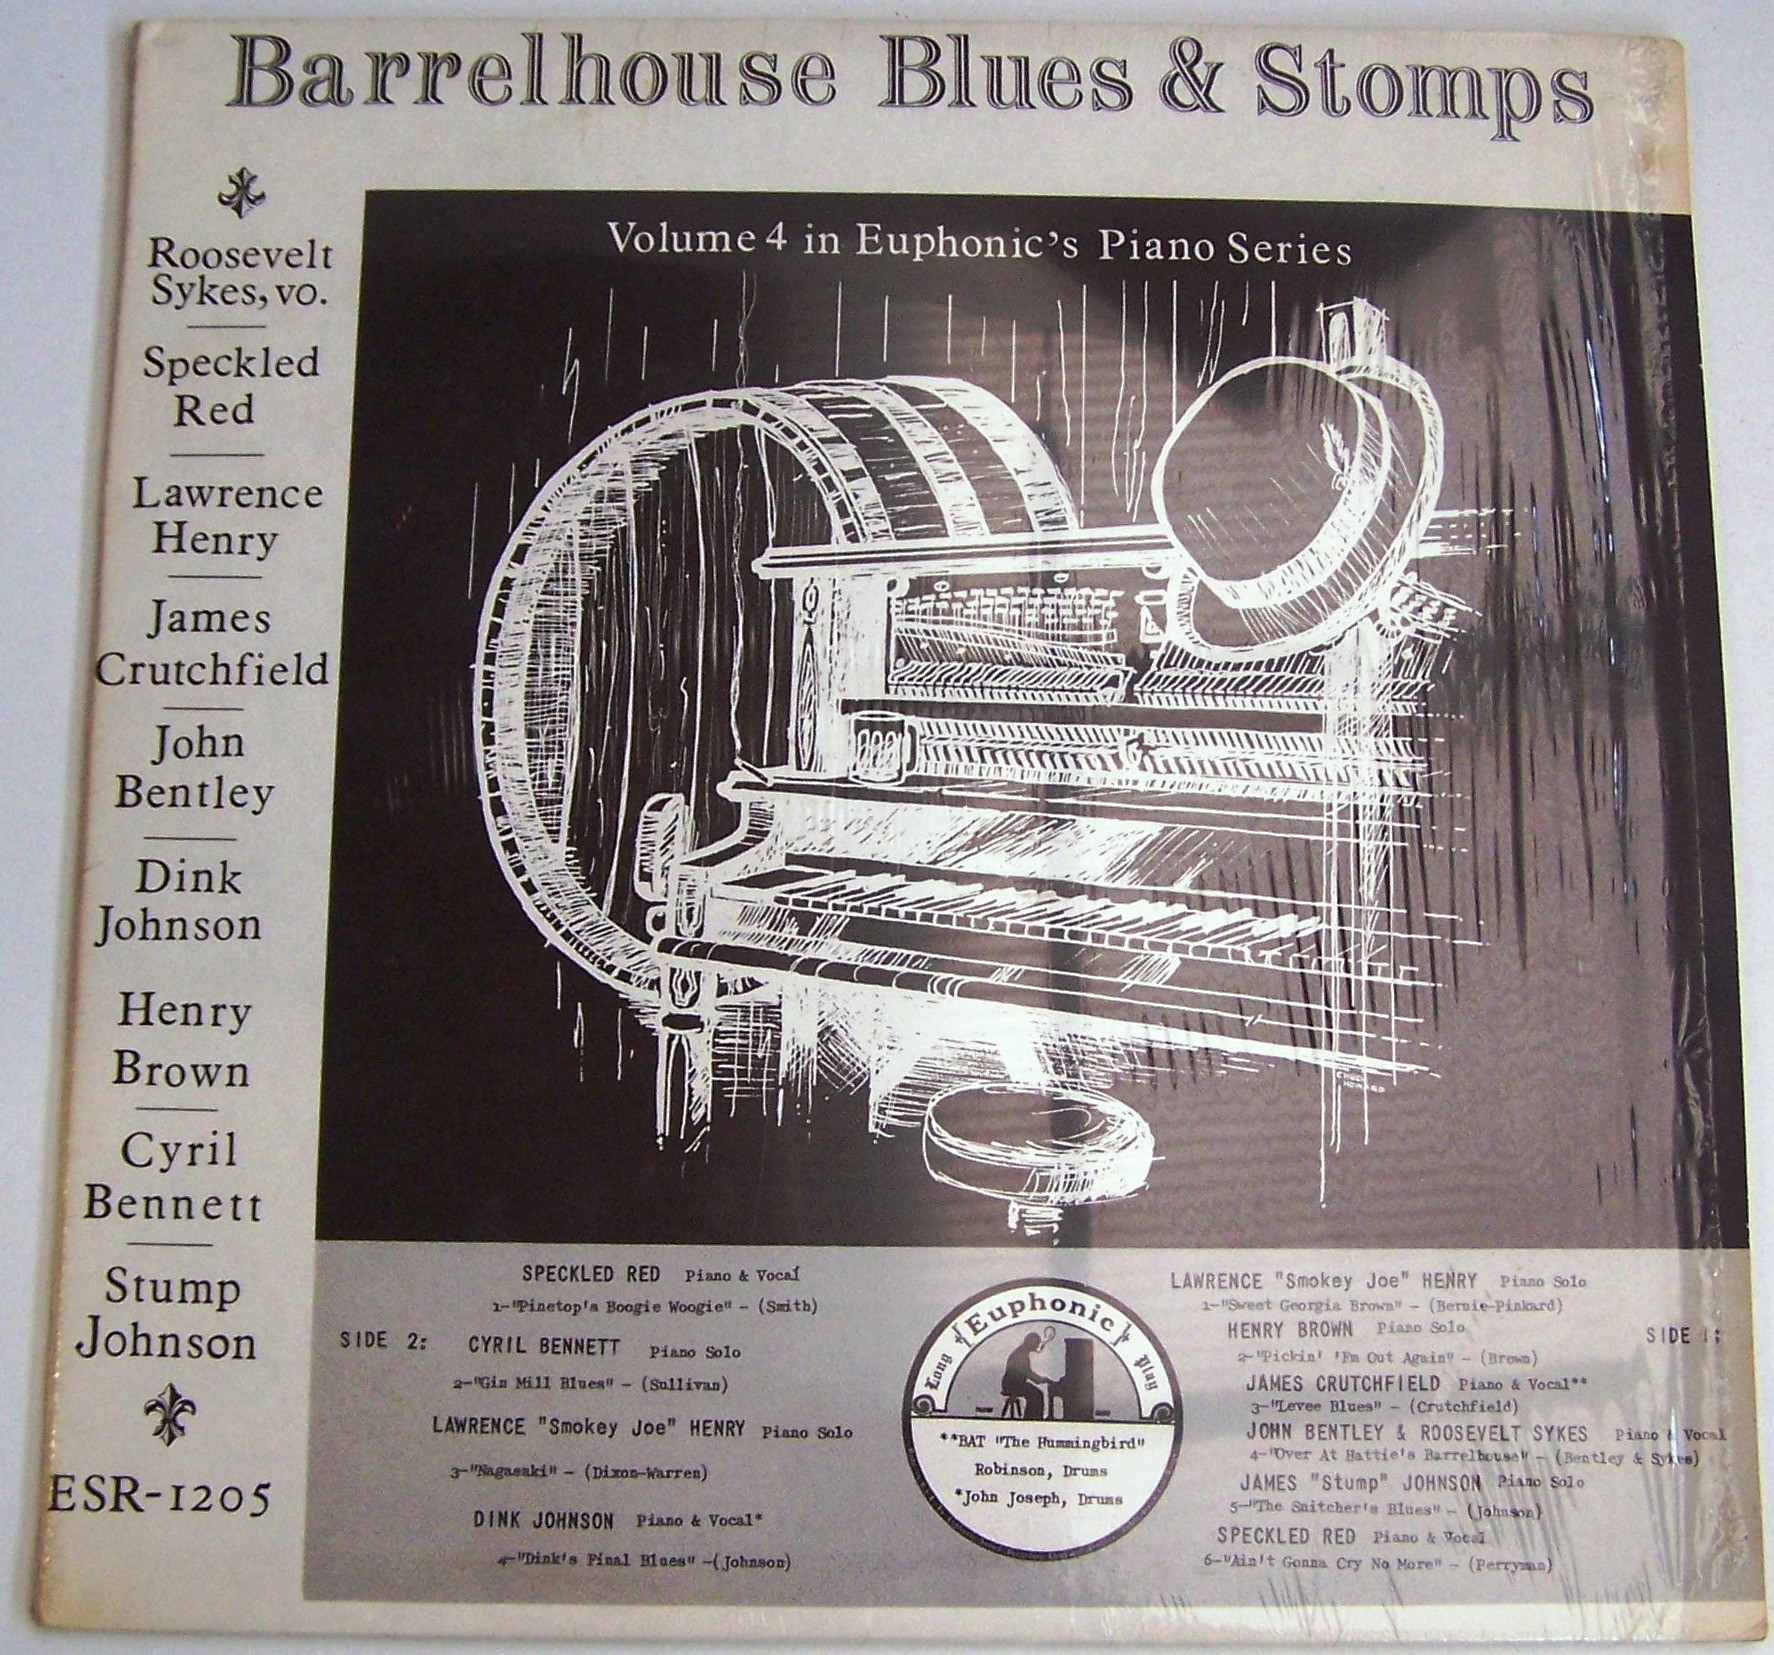 Various Artists - Barrelhouse Blues Stomps Vol 4 Roosevelt Sykes Speckled Red Lawrence Henry Etc